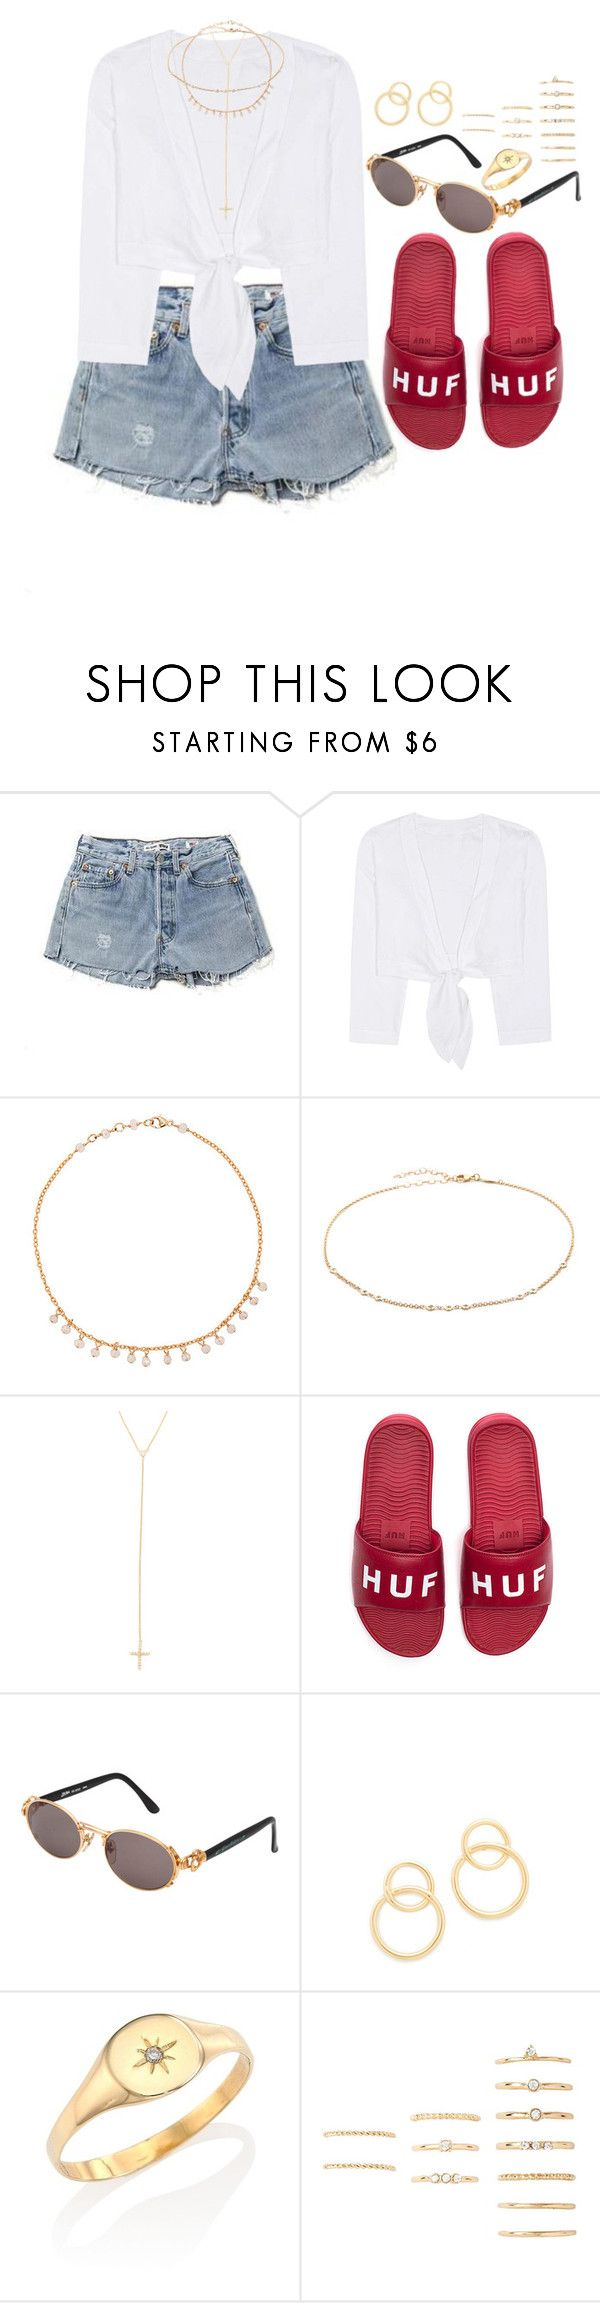 """""""Catch up"""" by liberhty ❤ liked on Polyvore featuring Lisa Marie Fernandez, Jacquie Aiche, HUF, Jean-Paul Gaultier and Forever 21"""